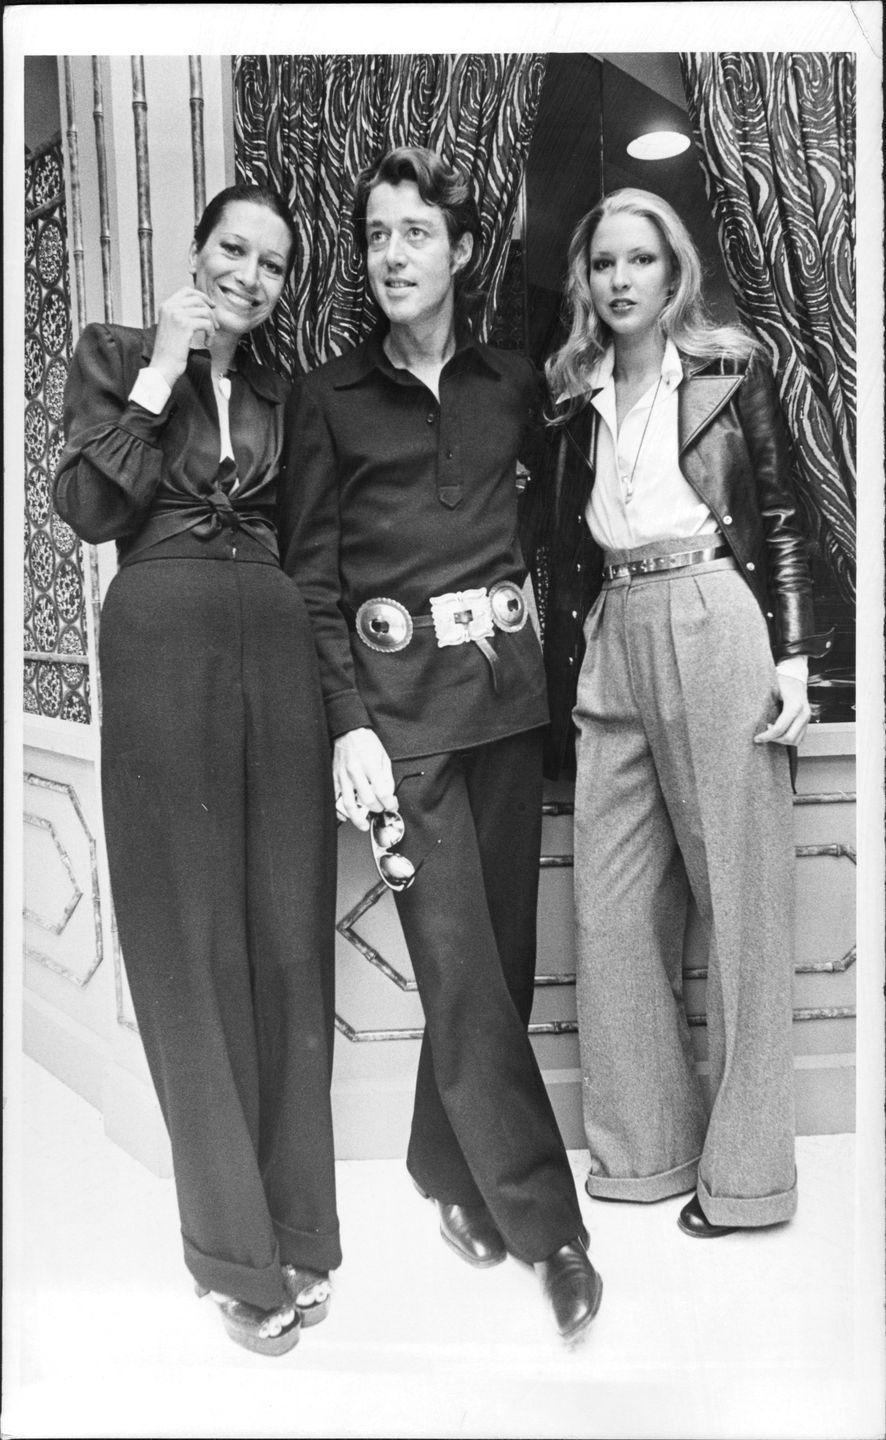 """<p>Halston was close friends with famed jewelry designer <a href=""""https://www.townandcountrymag.com/style/jewelry-and-watches/a7294/tiffanys-elsa-peretti-interview/"""" rel=""""nofollow noopener"""" target=""""_blank"""" data-ylk=""""slk:Elsa Peretti"""" class=""""link rapid-noclick-resp"""">Elsa Peretti</a>. He's pictured here with Peretti (left).</p>"""